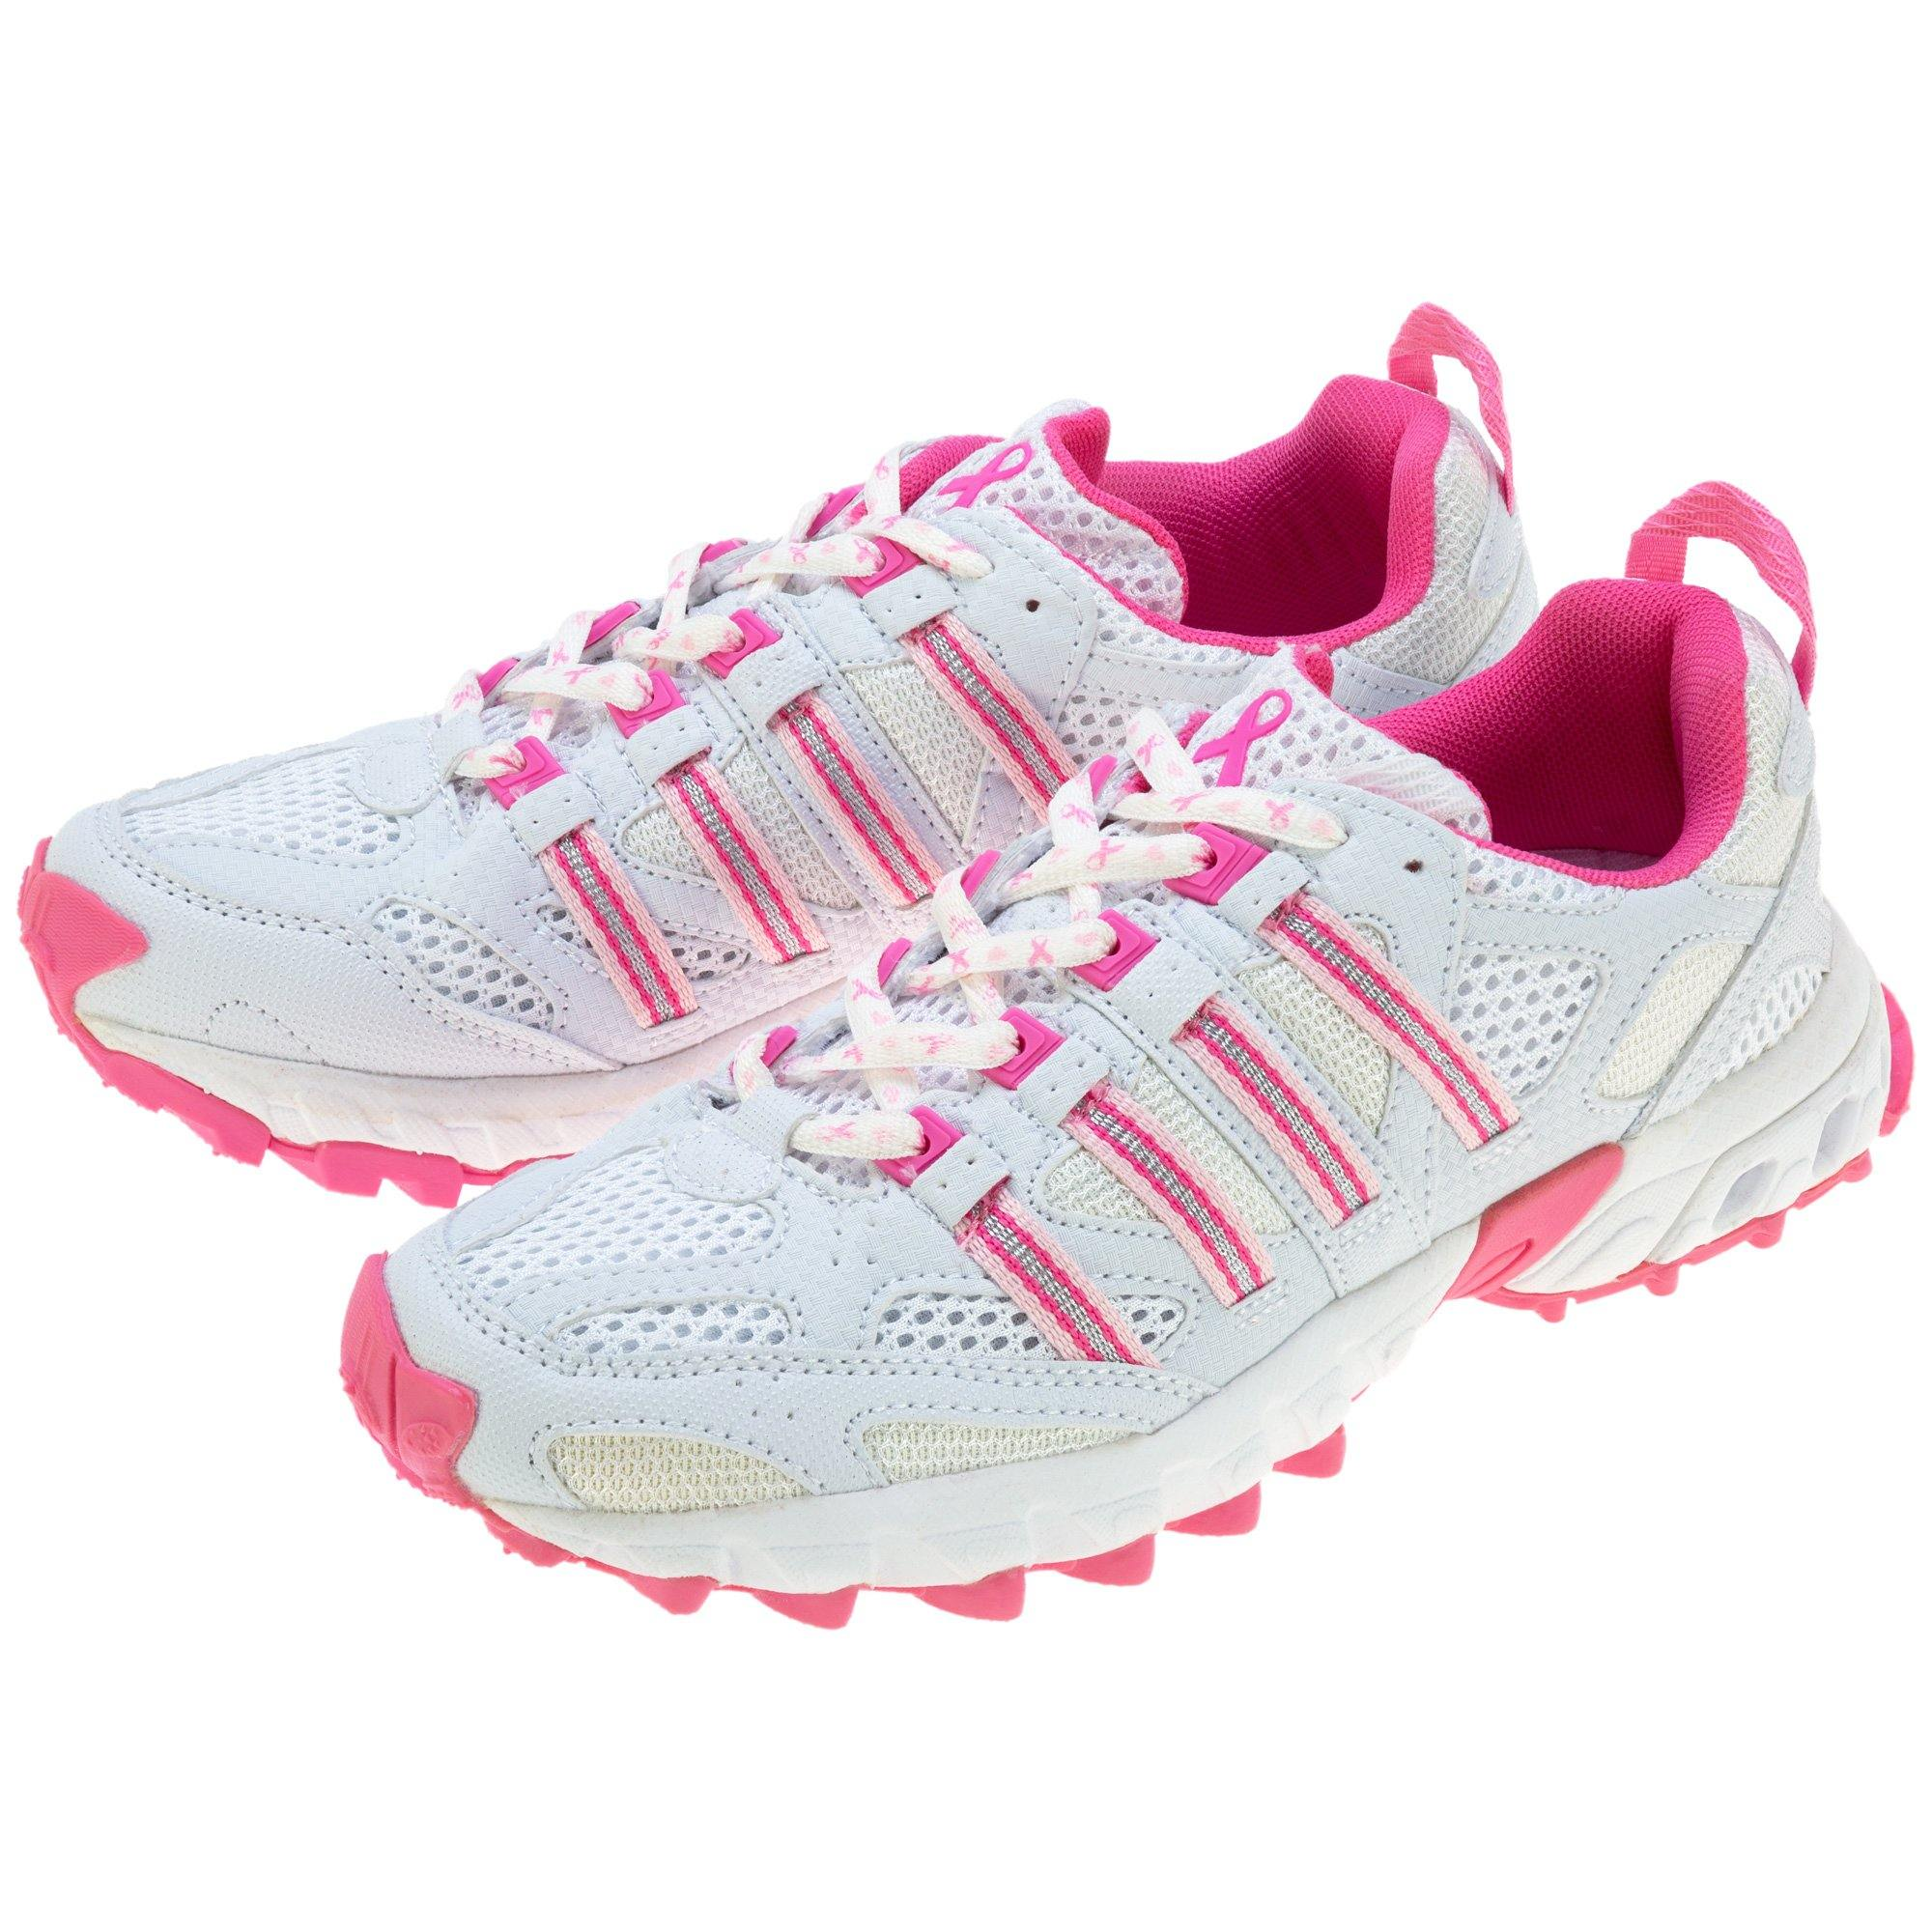 Pink Ribbon Cross Training Shoes For Women Breast Cancer